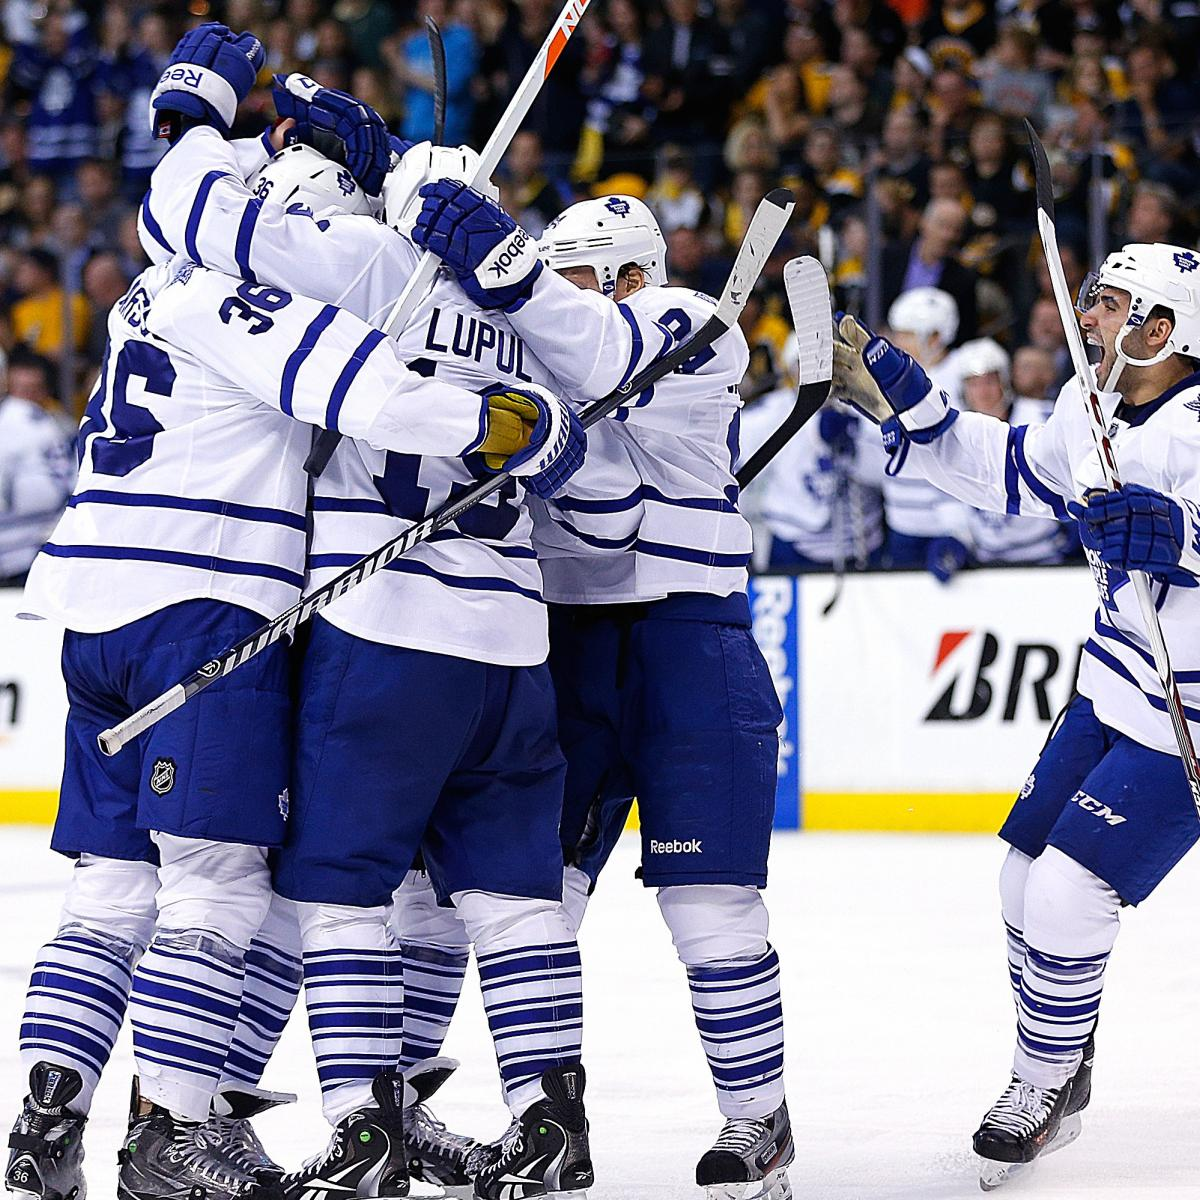 Maple Leafs vs. Bruins: Instant Analysis, Updates and ...Bruins Bleacher Report